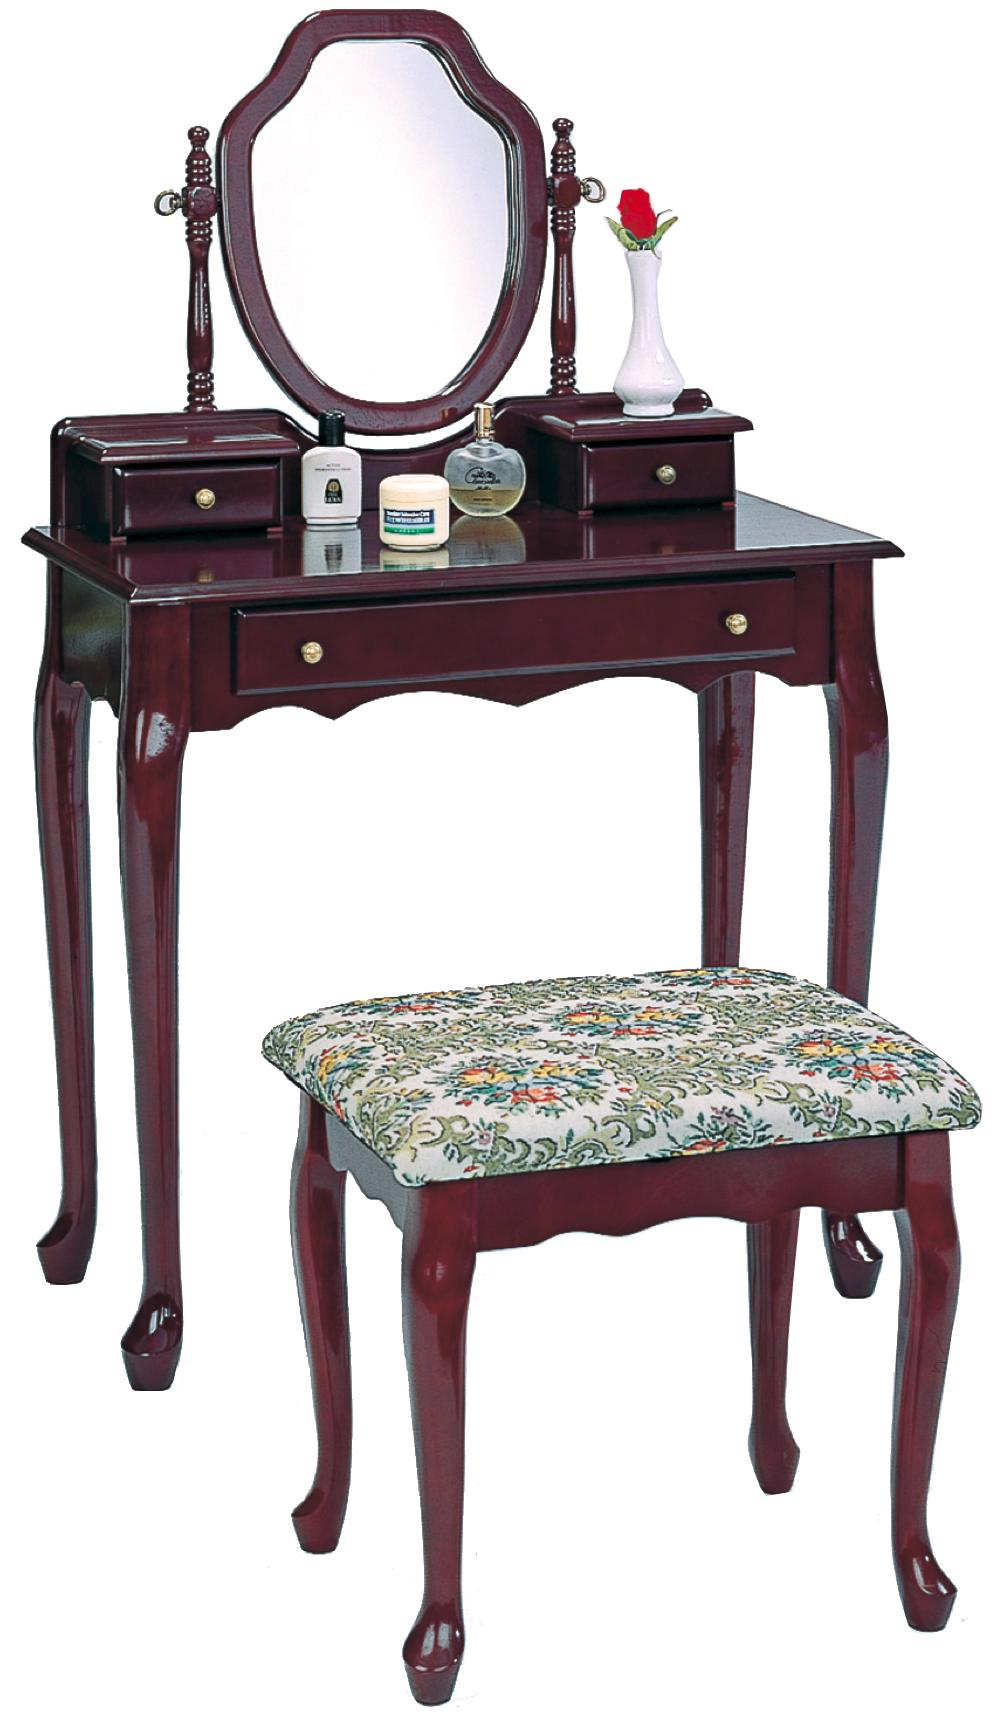 Vanity bench set dark wooden dressing table stool 3441 coaster - Stool for vanity table ...